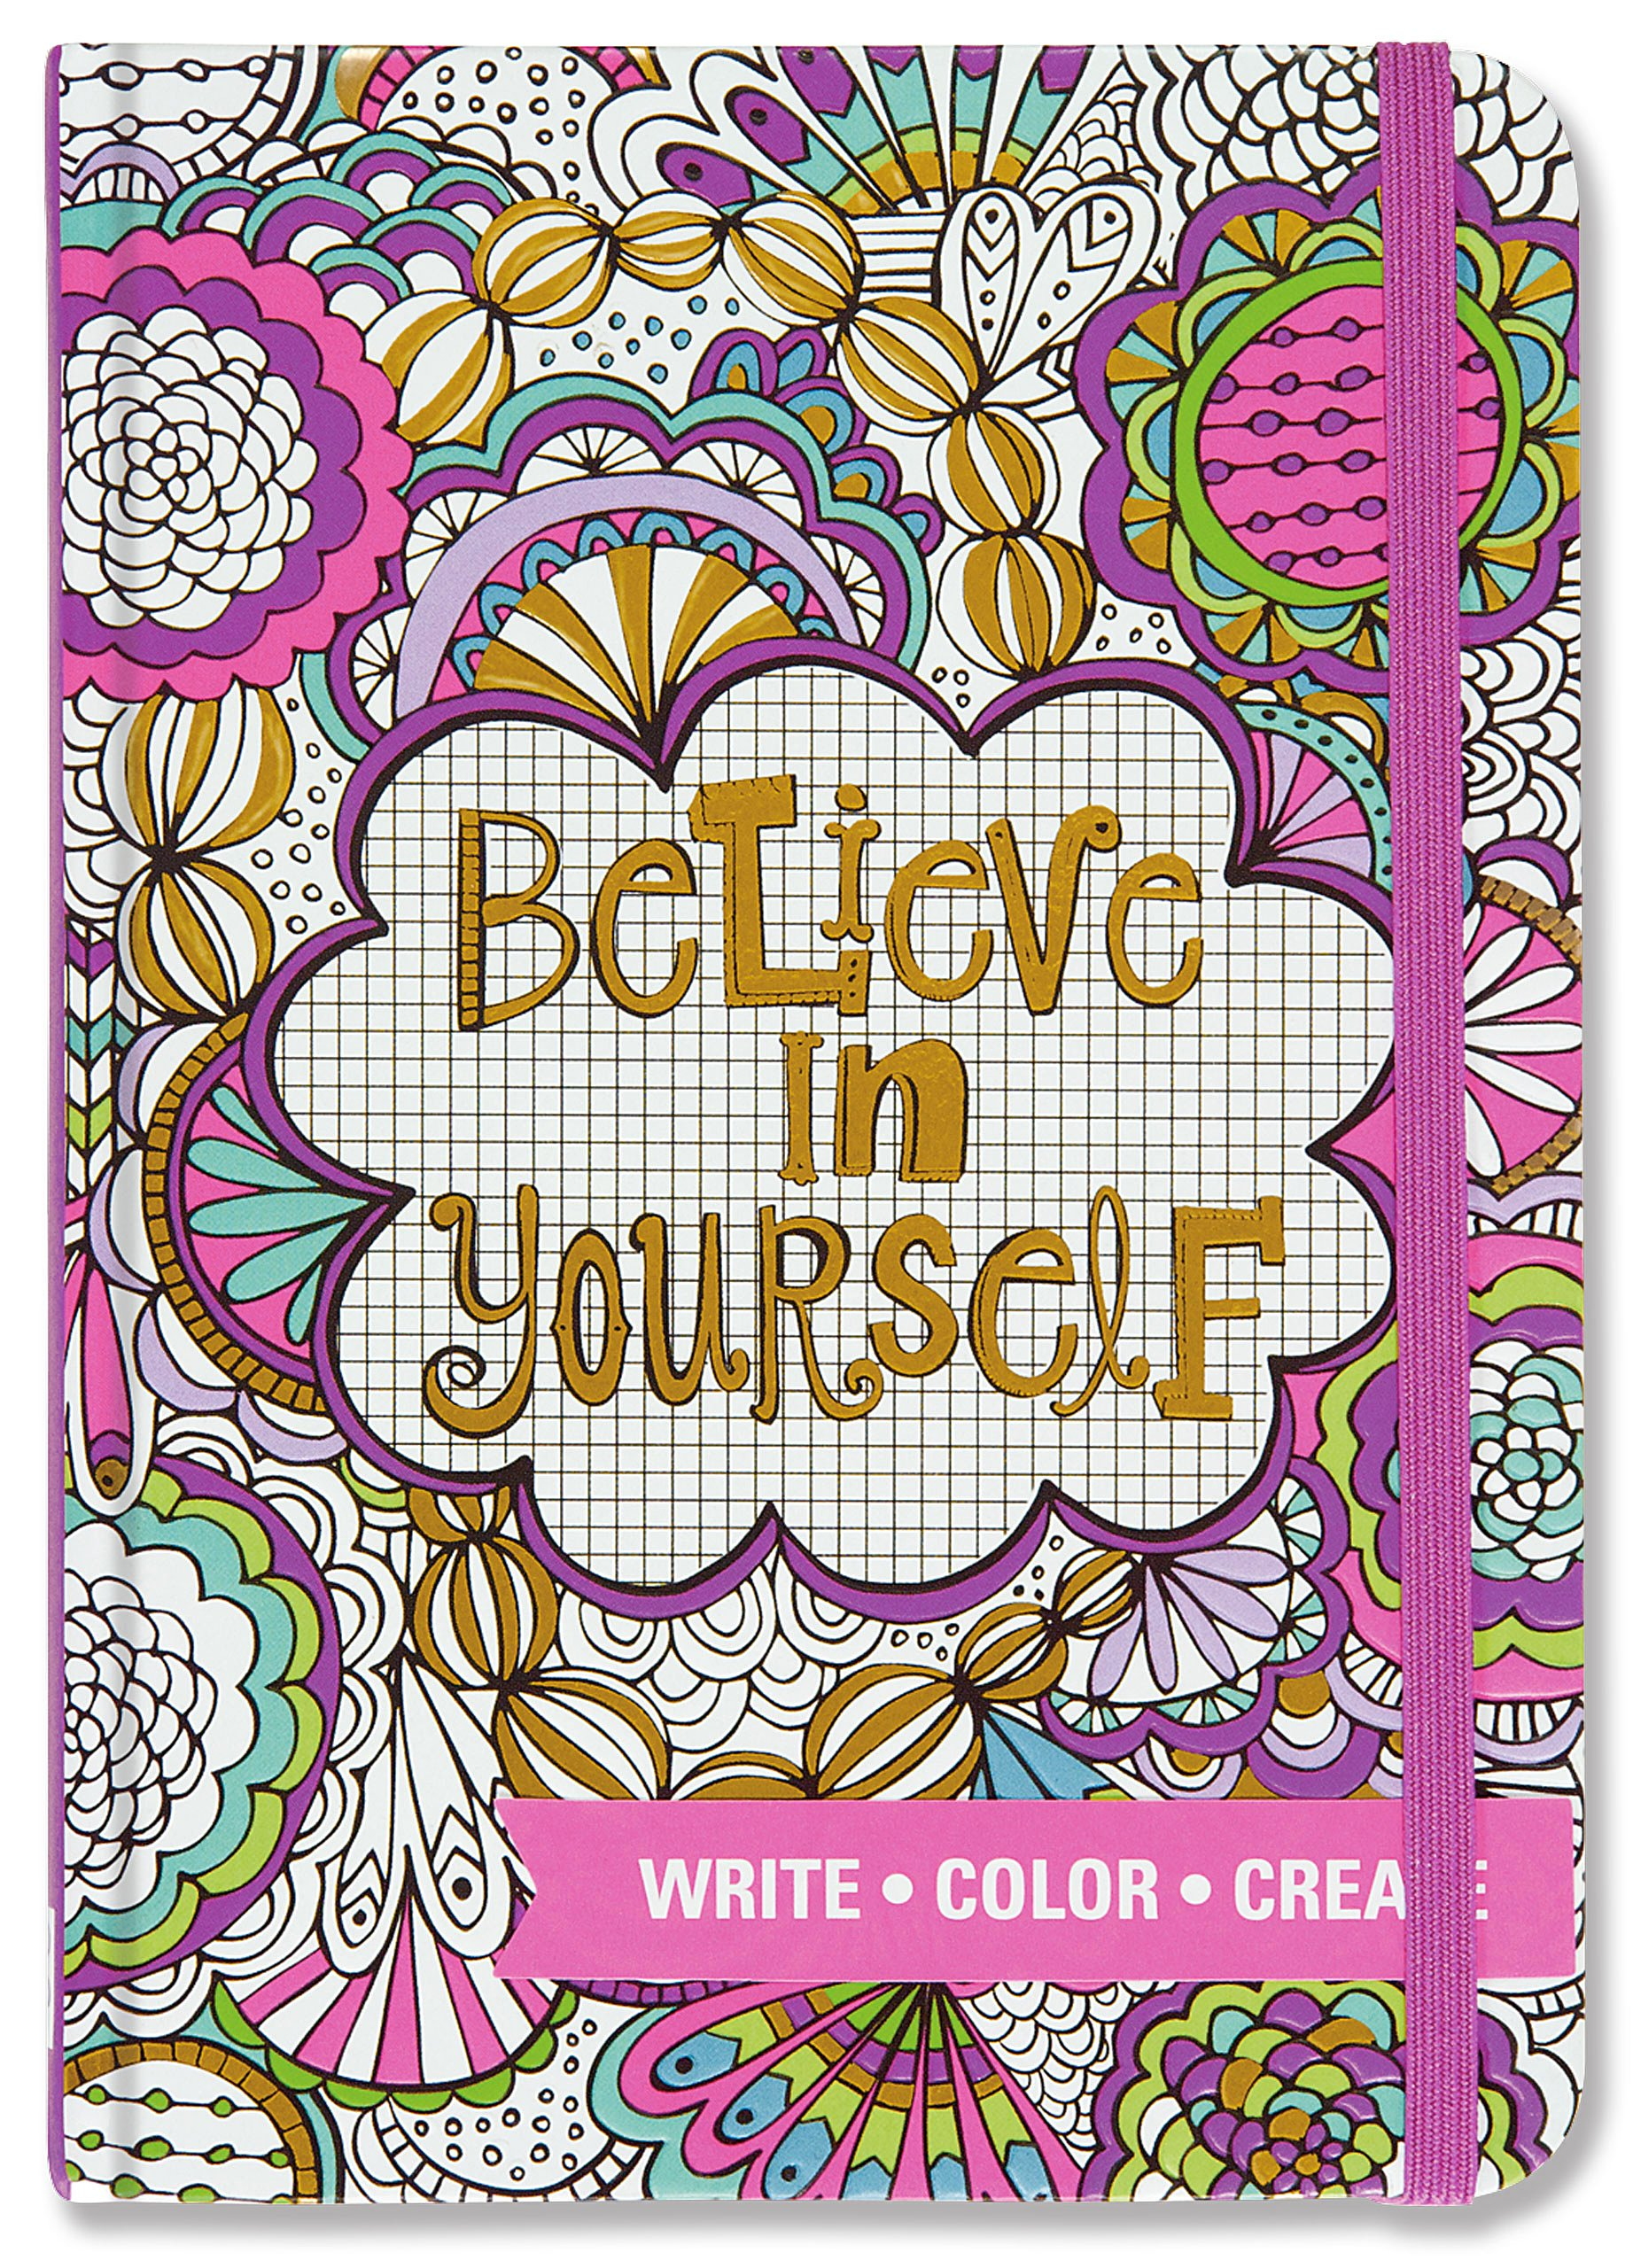 80 Color Me Calm Stress Relief Coloring Journal